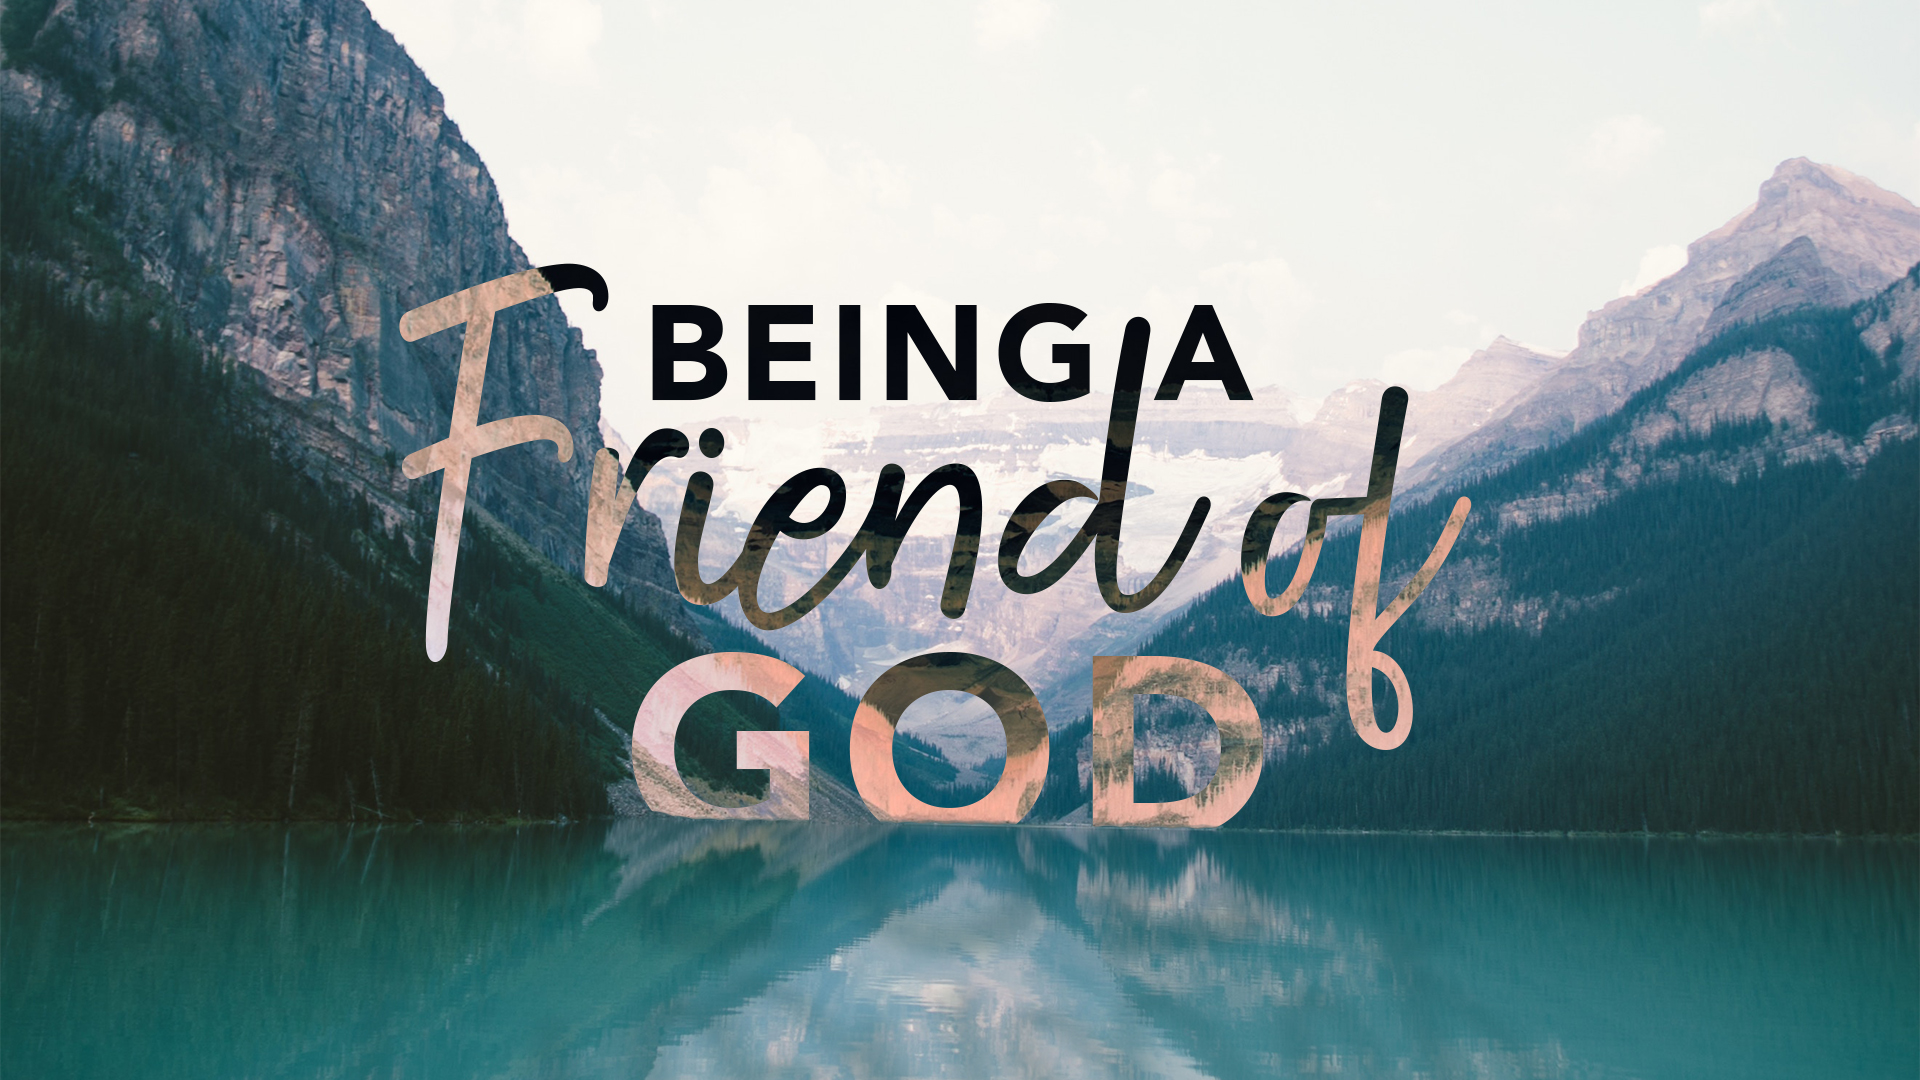 Being a Friend of God Banner - Picture of Mountains and Lake